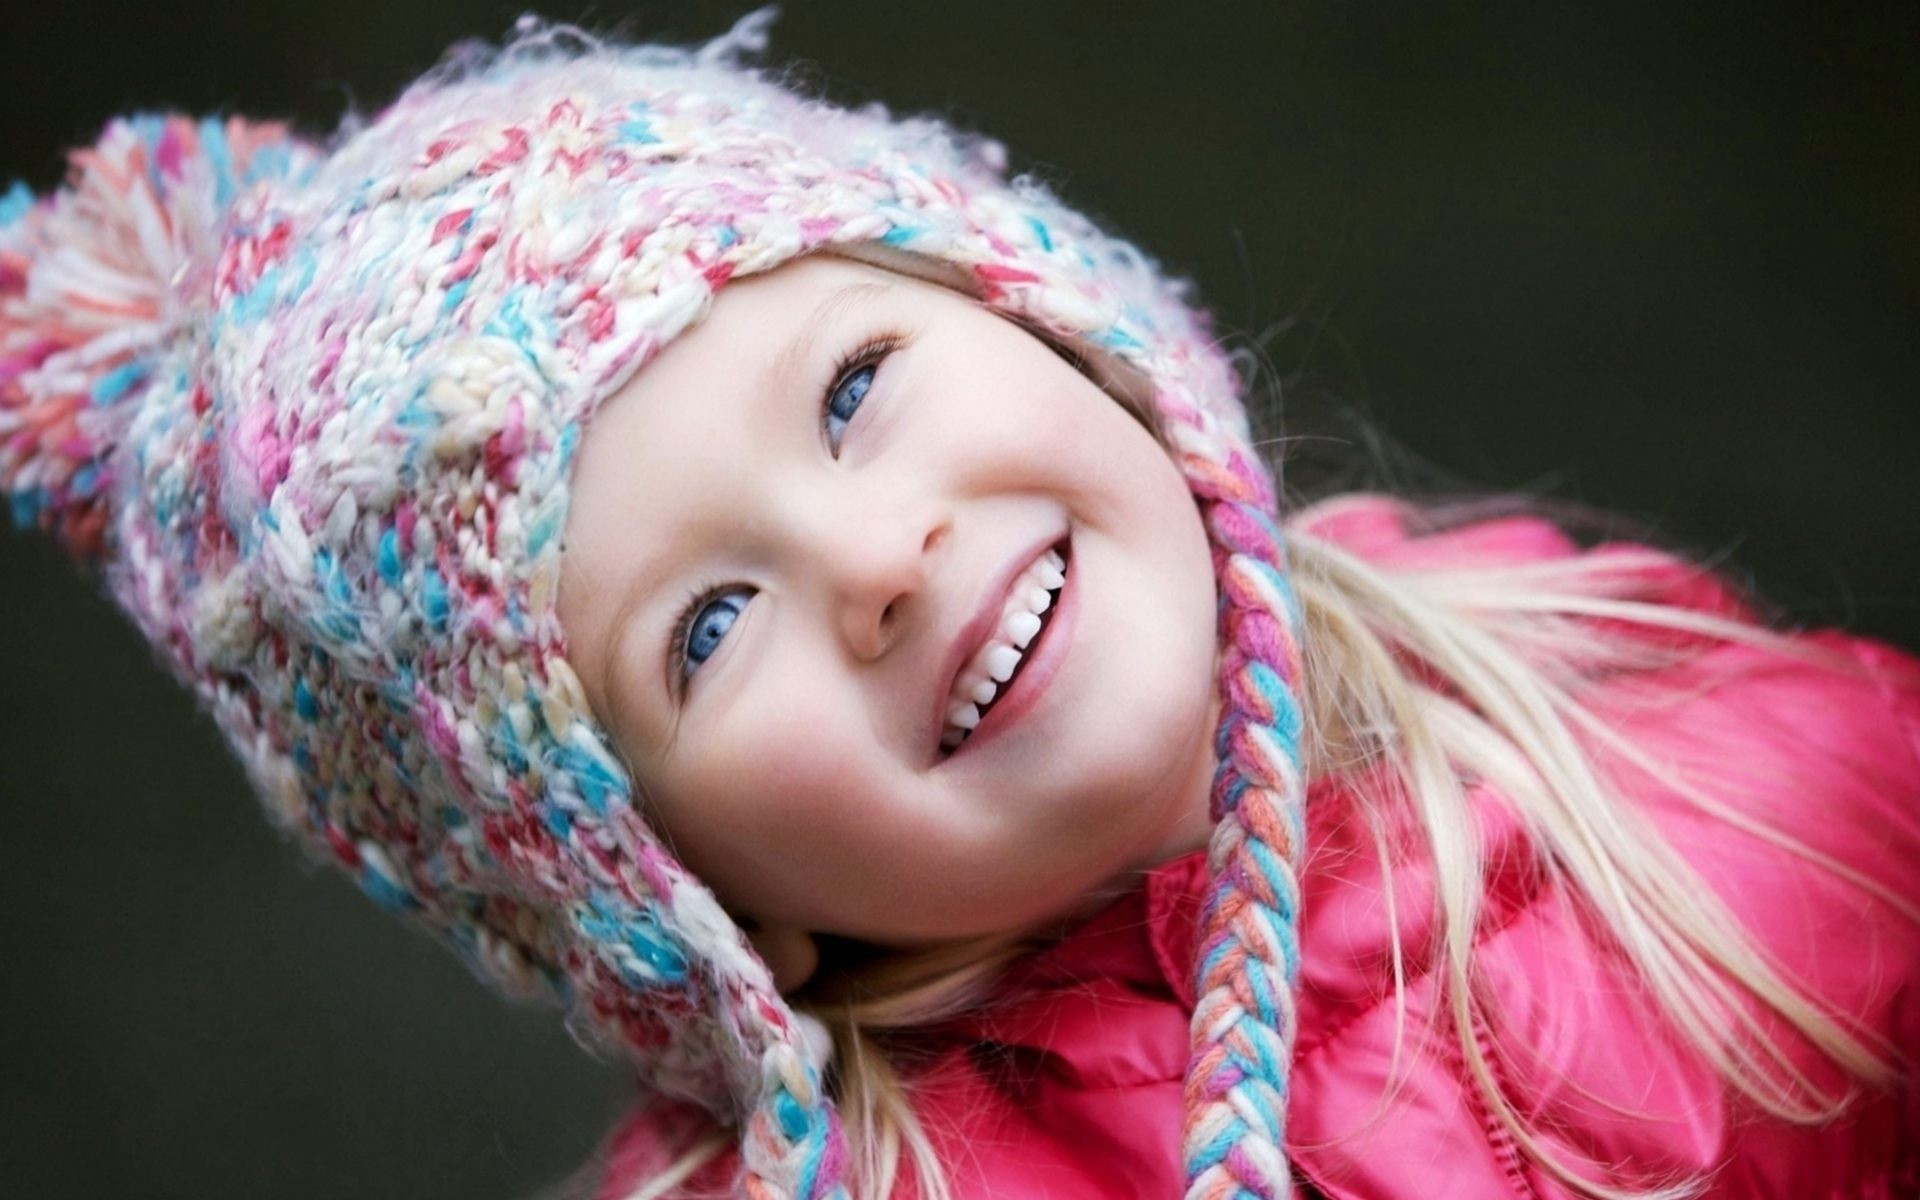 cute baby pics wallpapers (64+ images)